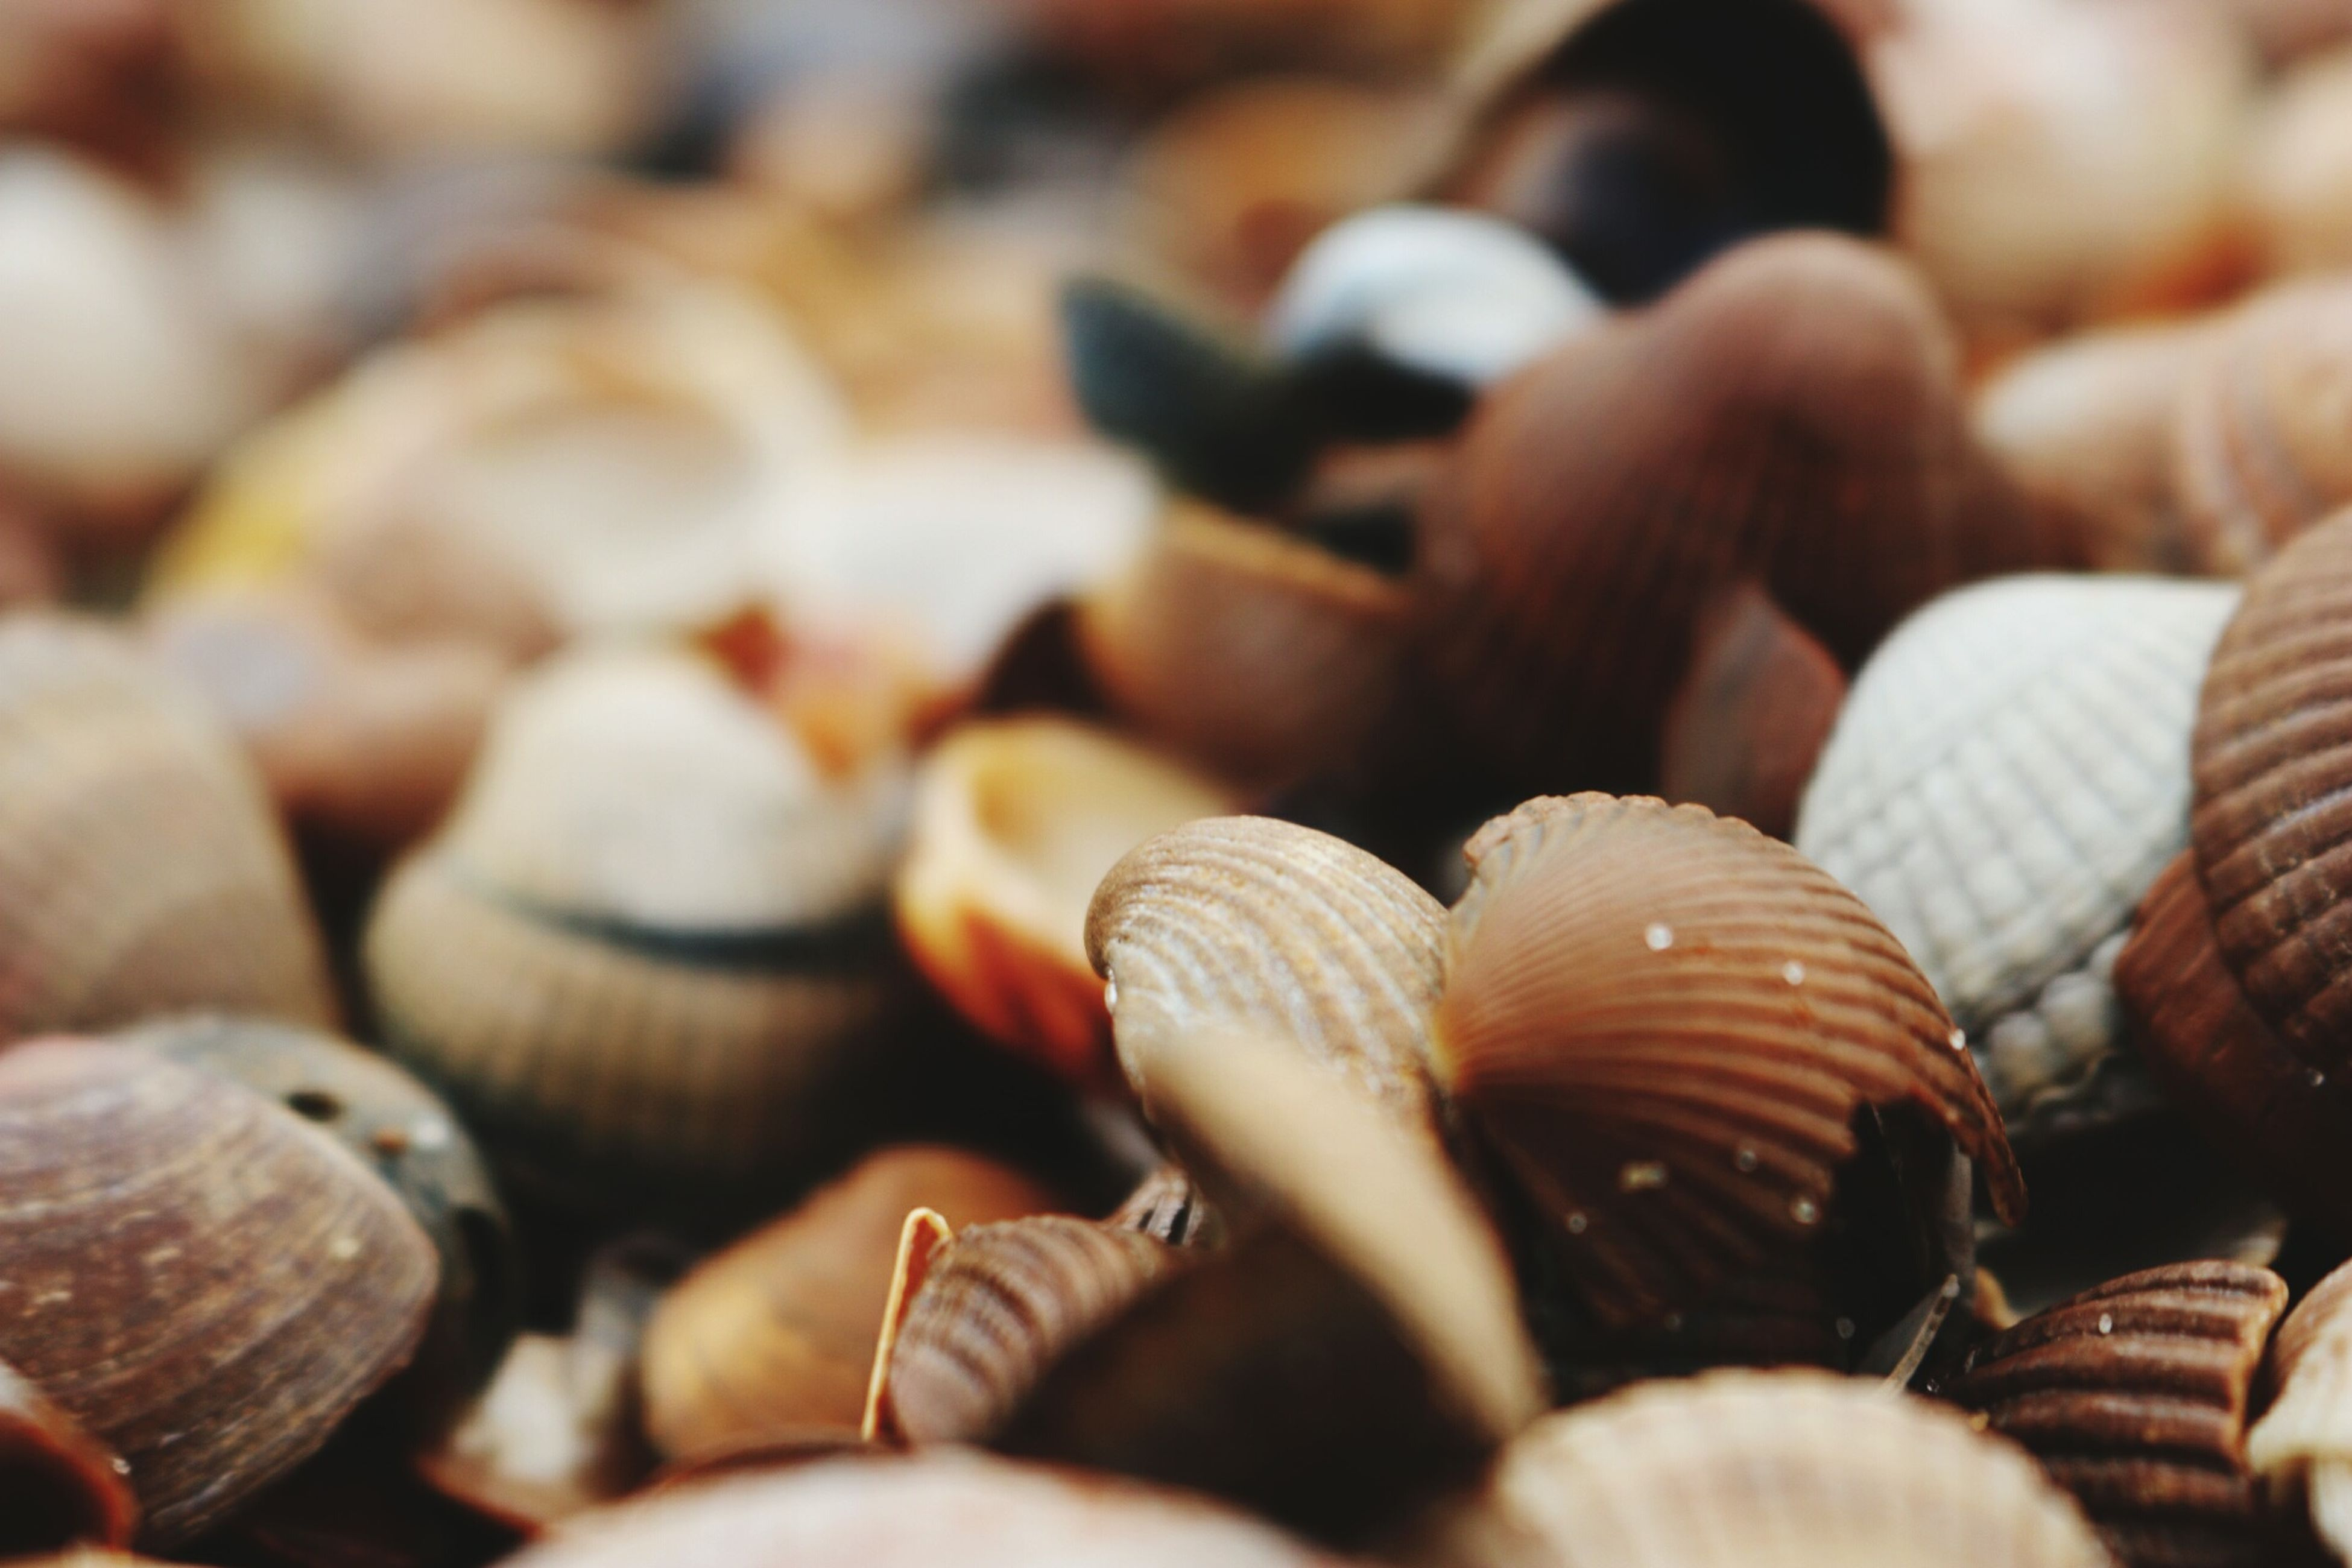 seashell, close-up, selective focus, no people, large group of objects, day, nature, outdoors, animal themes